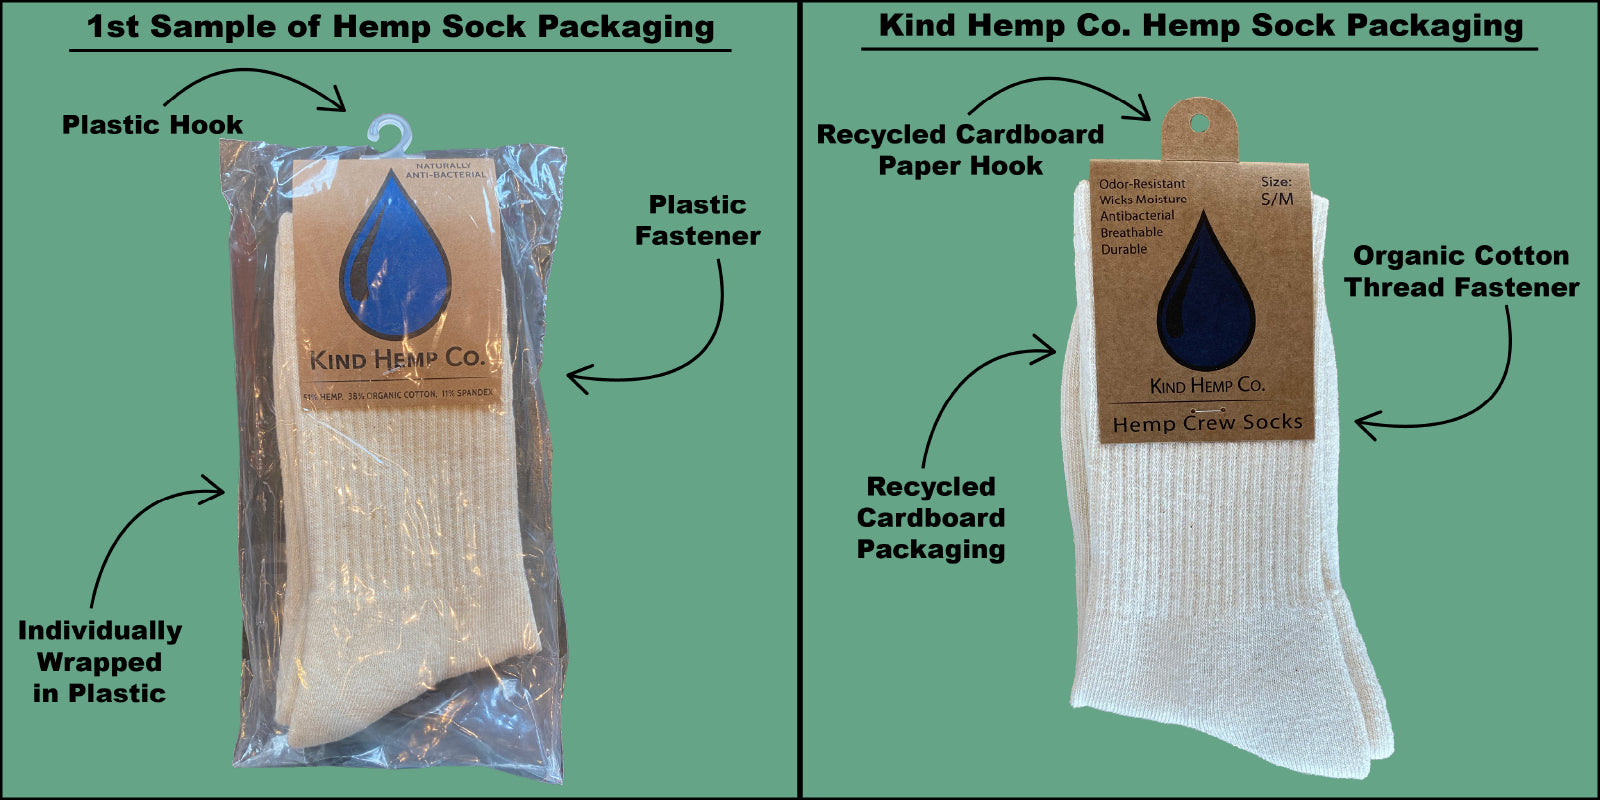 Kind Hemp Co Plastic-free Hemp Sock Packaging